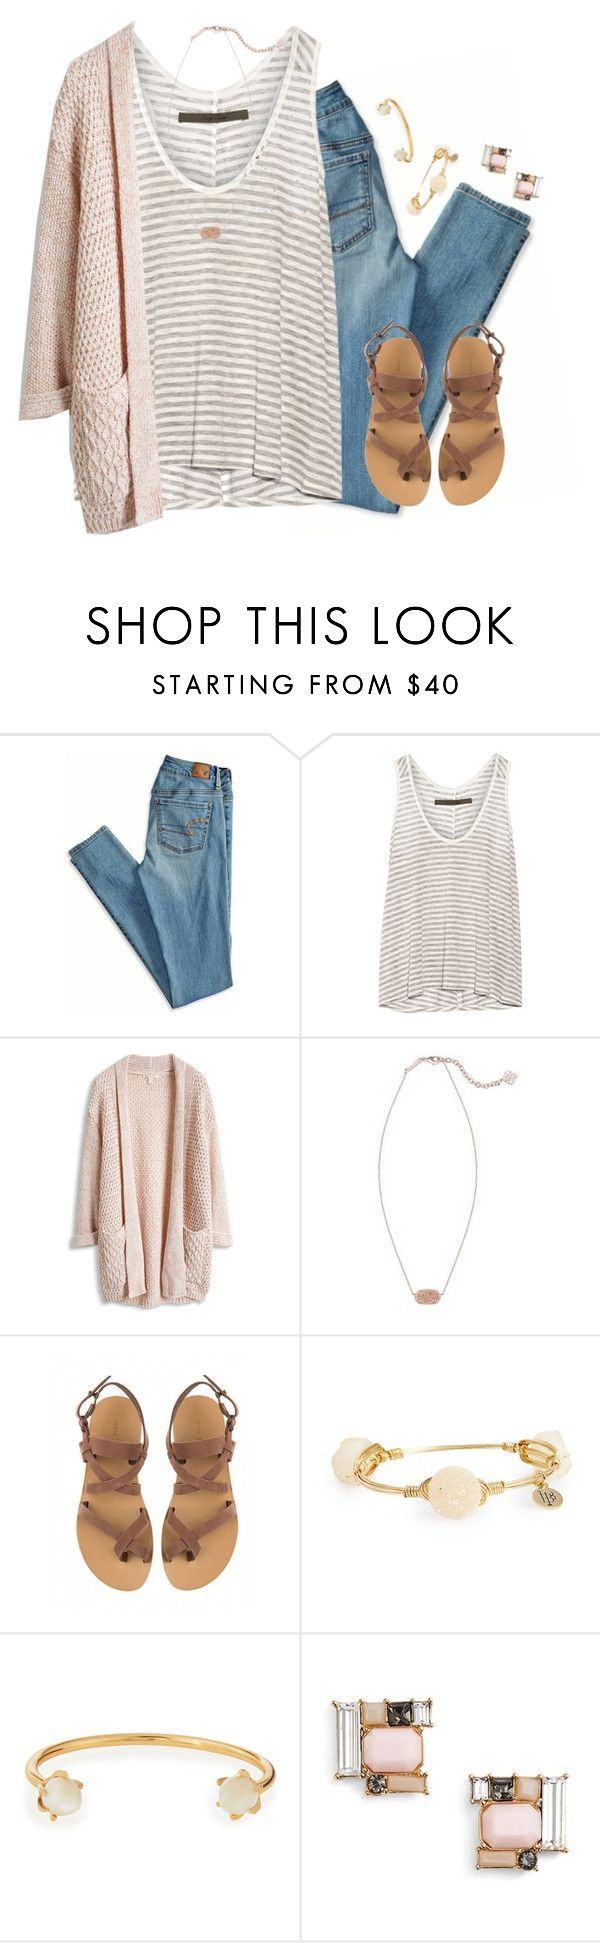 """""""❁ she needed a hero so that's what she became ❁"""" by kaley-ii ❤ liked on Polyvore featuring American Eagle Outfitters, Enza Costa, Kendra Scott, Valia Gabriel, Bourbon and Boweties, Lizzie Fortunato and Kate Spade"""